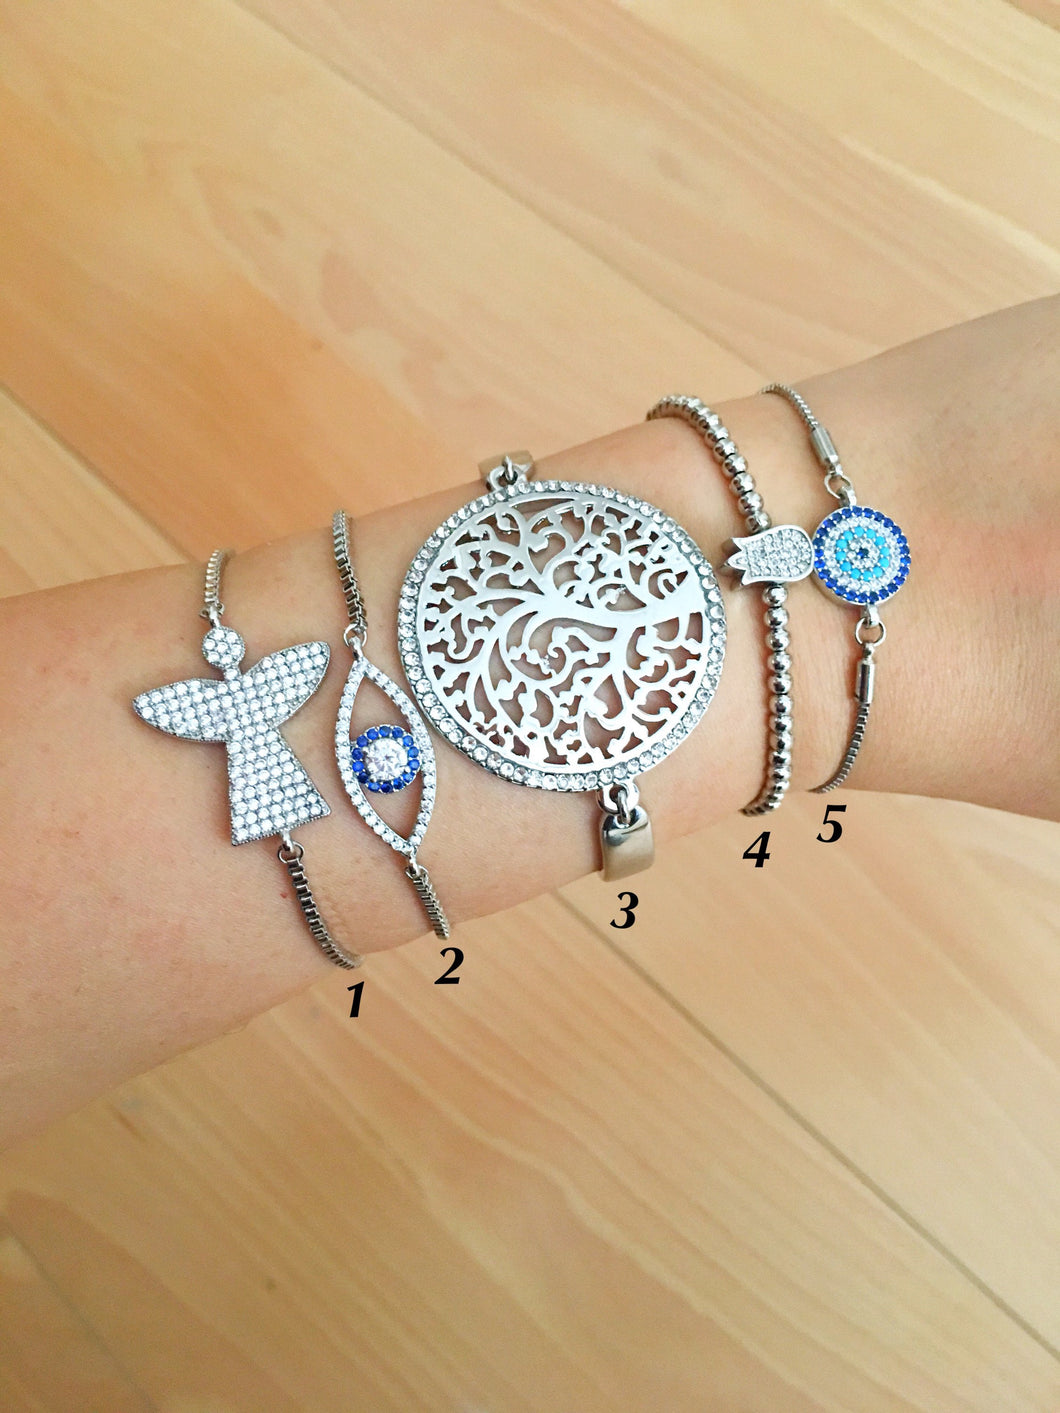 Silver Evil Eye Bracelet Set, Adjustable Charm Bracelet, Tree of Life Tulip Charm - Evileyefavor